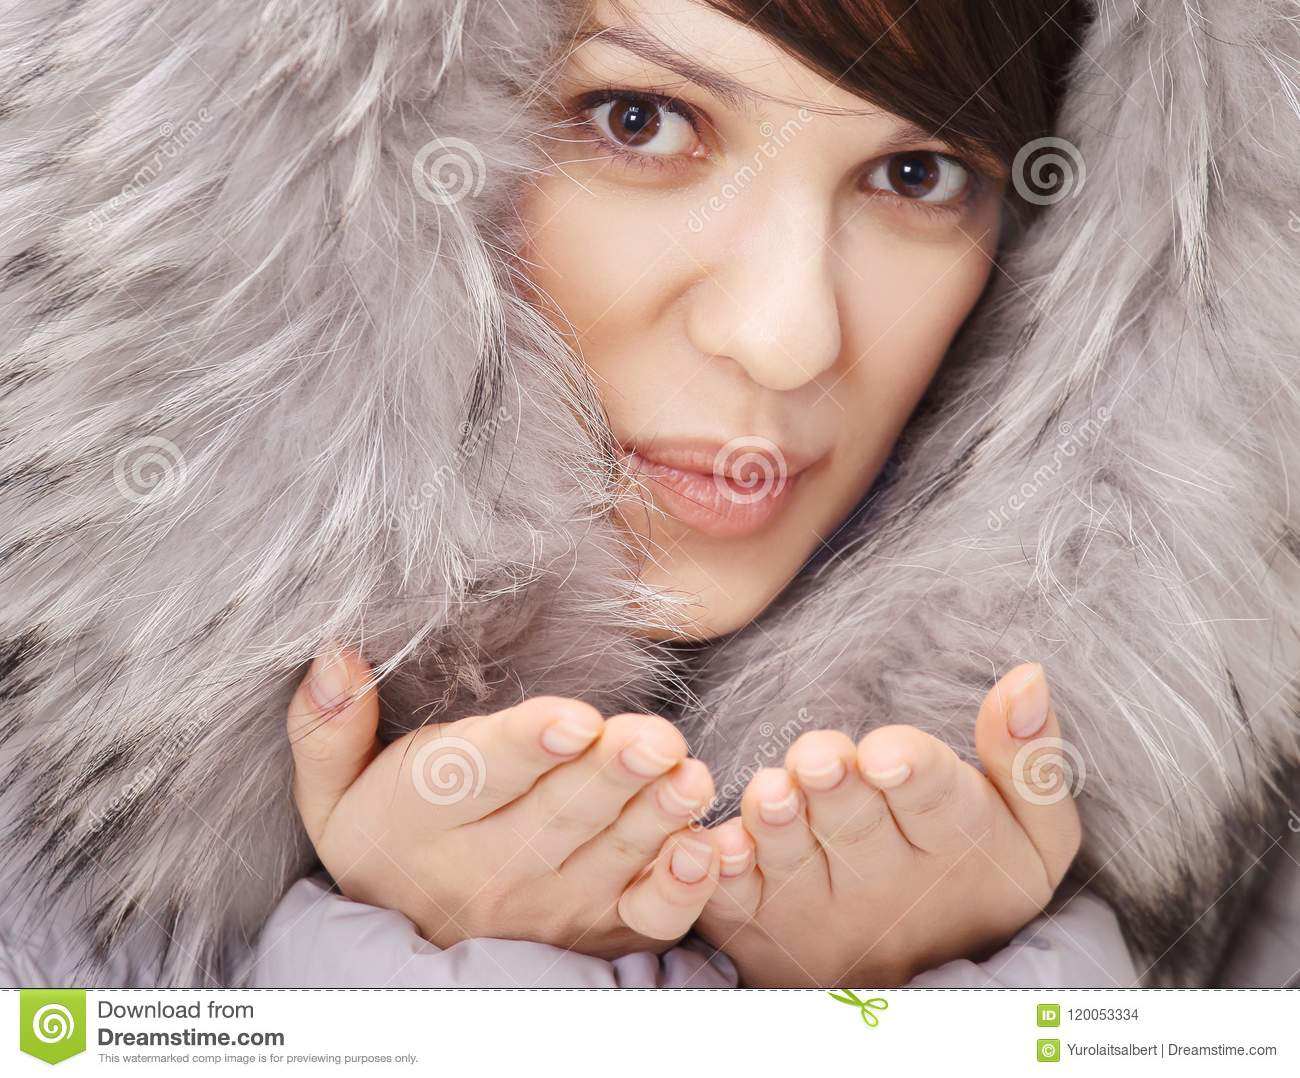 cba023d12310d Beautiful Young Woman In Winter Jacket Making A Kiss. Stock Photo ...